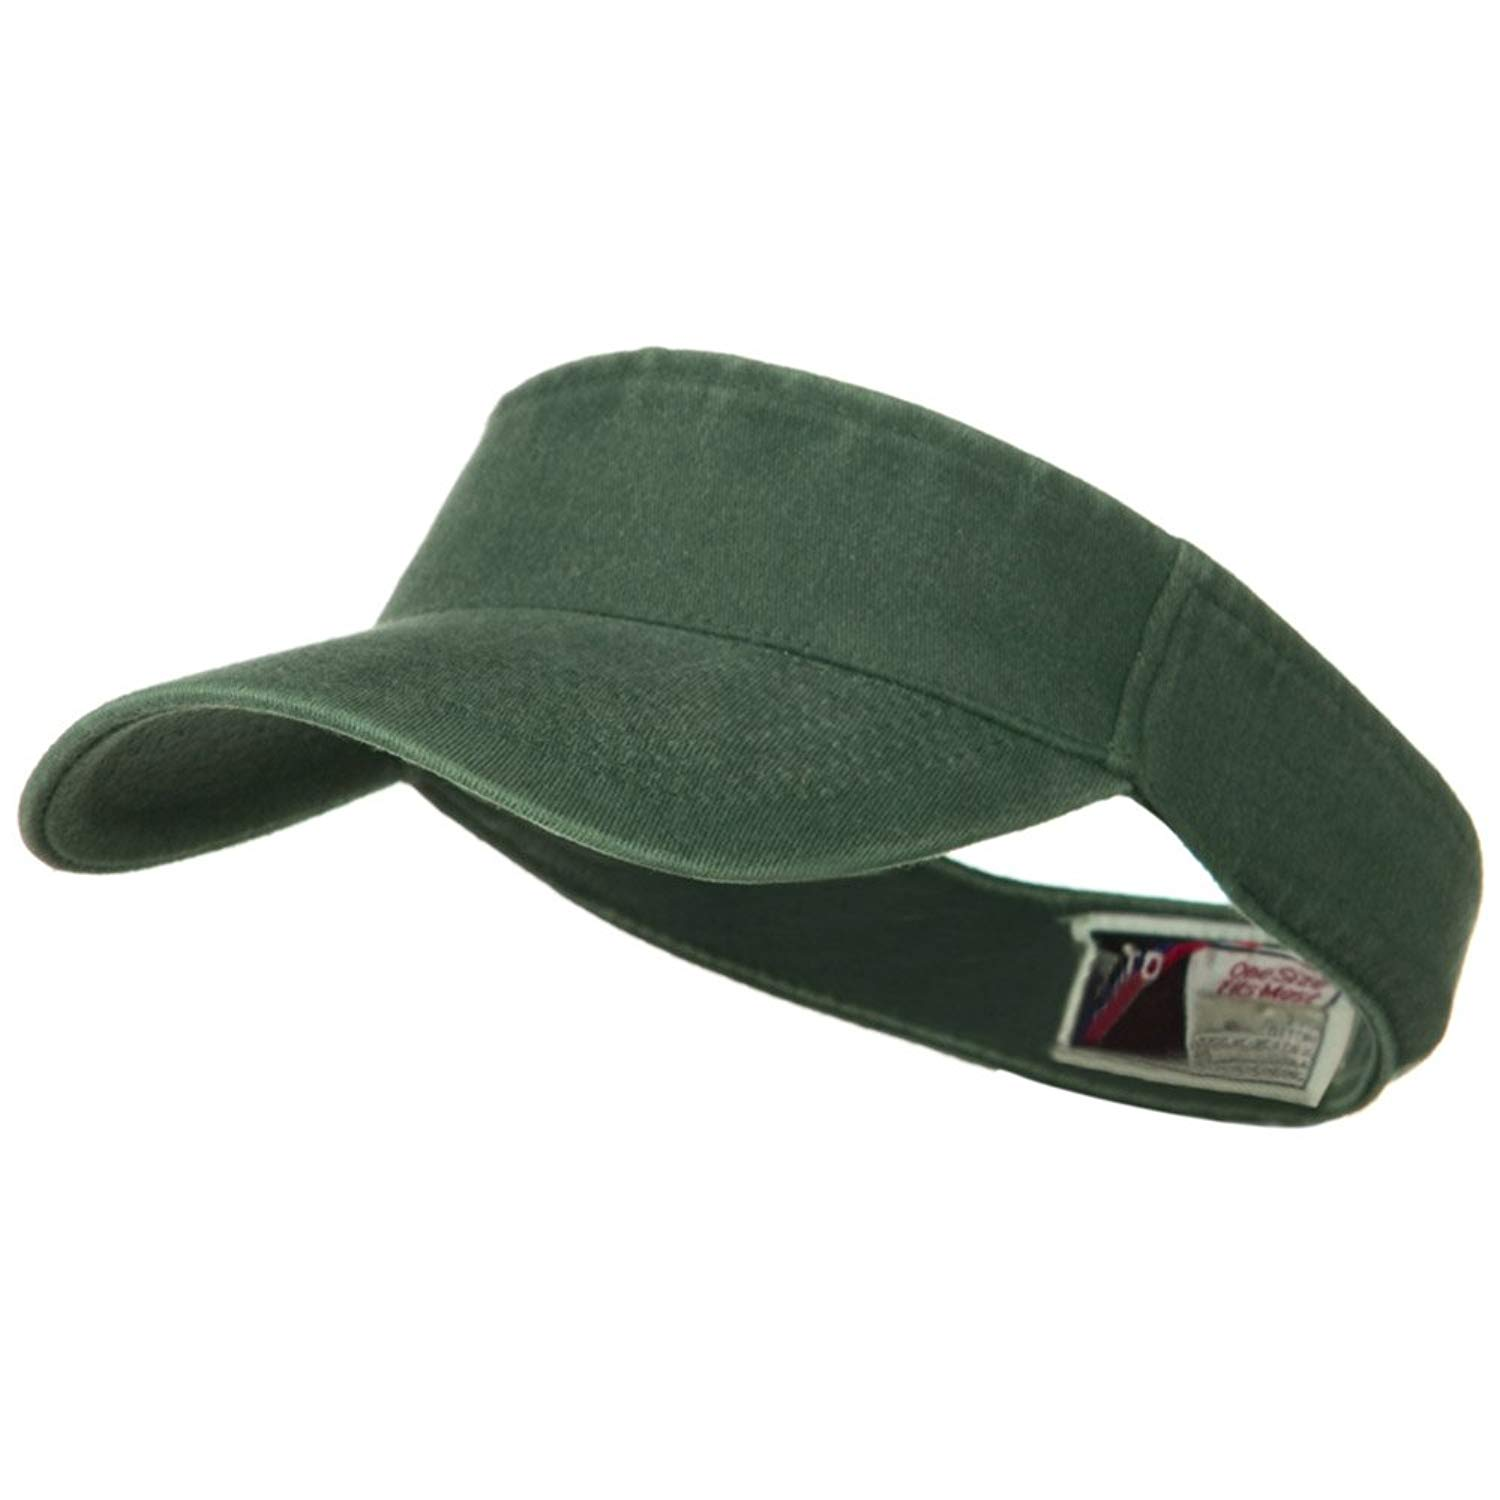 81e9521f Cheap Green Accountant Visor, find Green Accountant Visor deals on ...